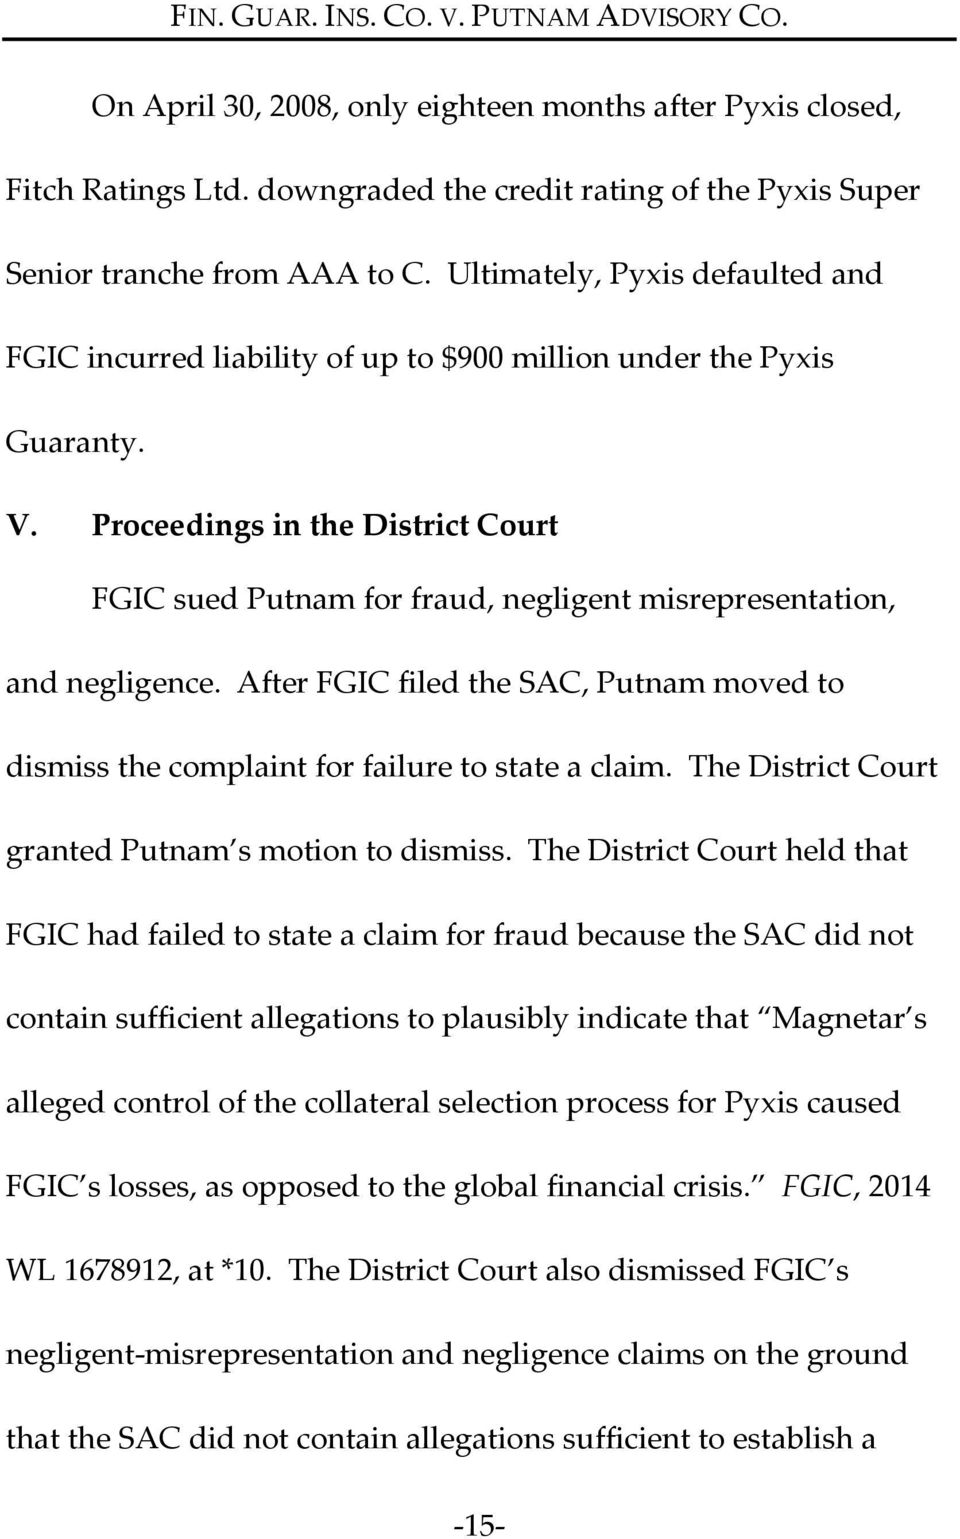 Proceedings in the District Court FGIC sued Putnam for fraud, negligent misrepresentation, and negligence. After FGIC filed the SAC, Putnam moved to dismiss the complaint for failure to state a claim.